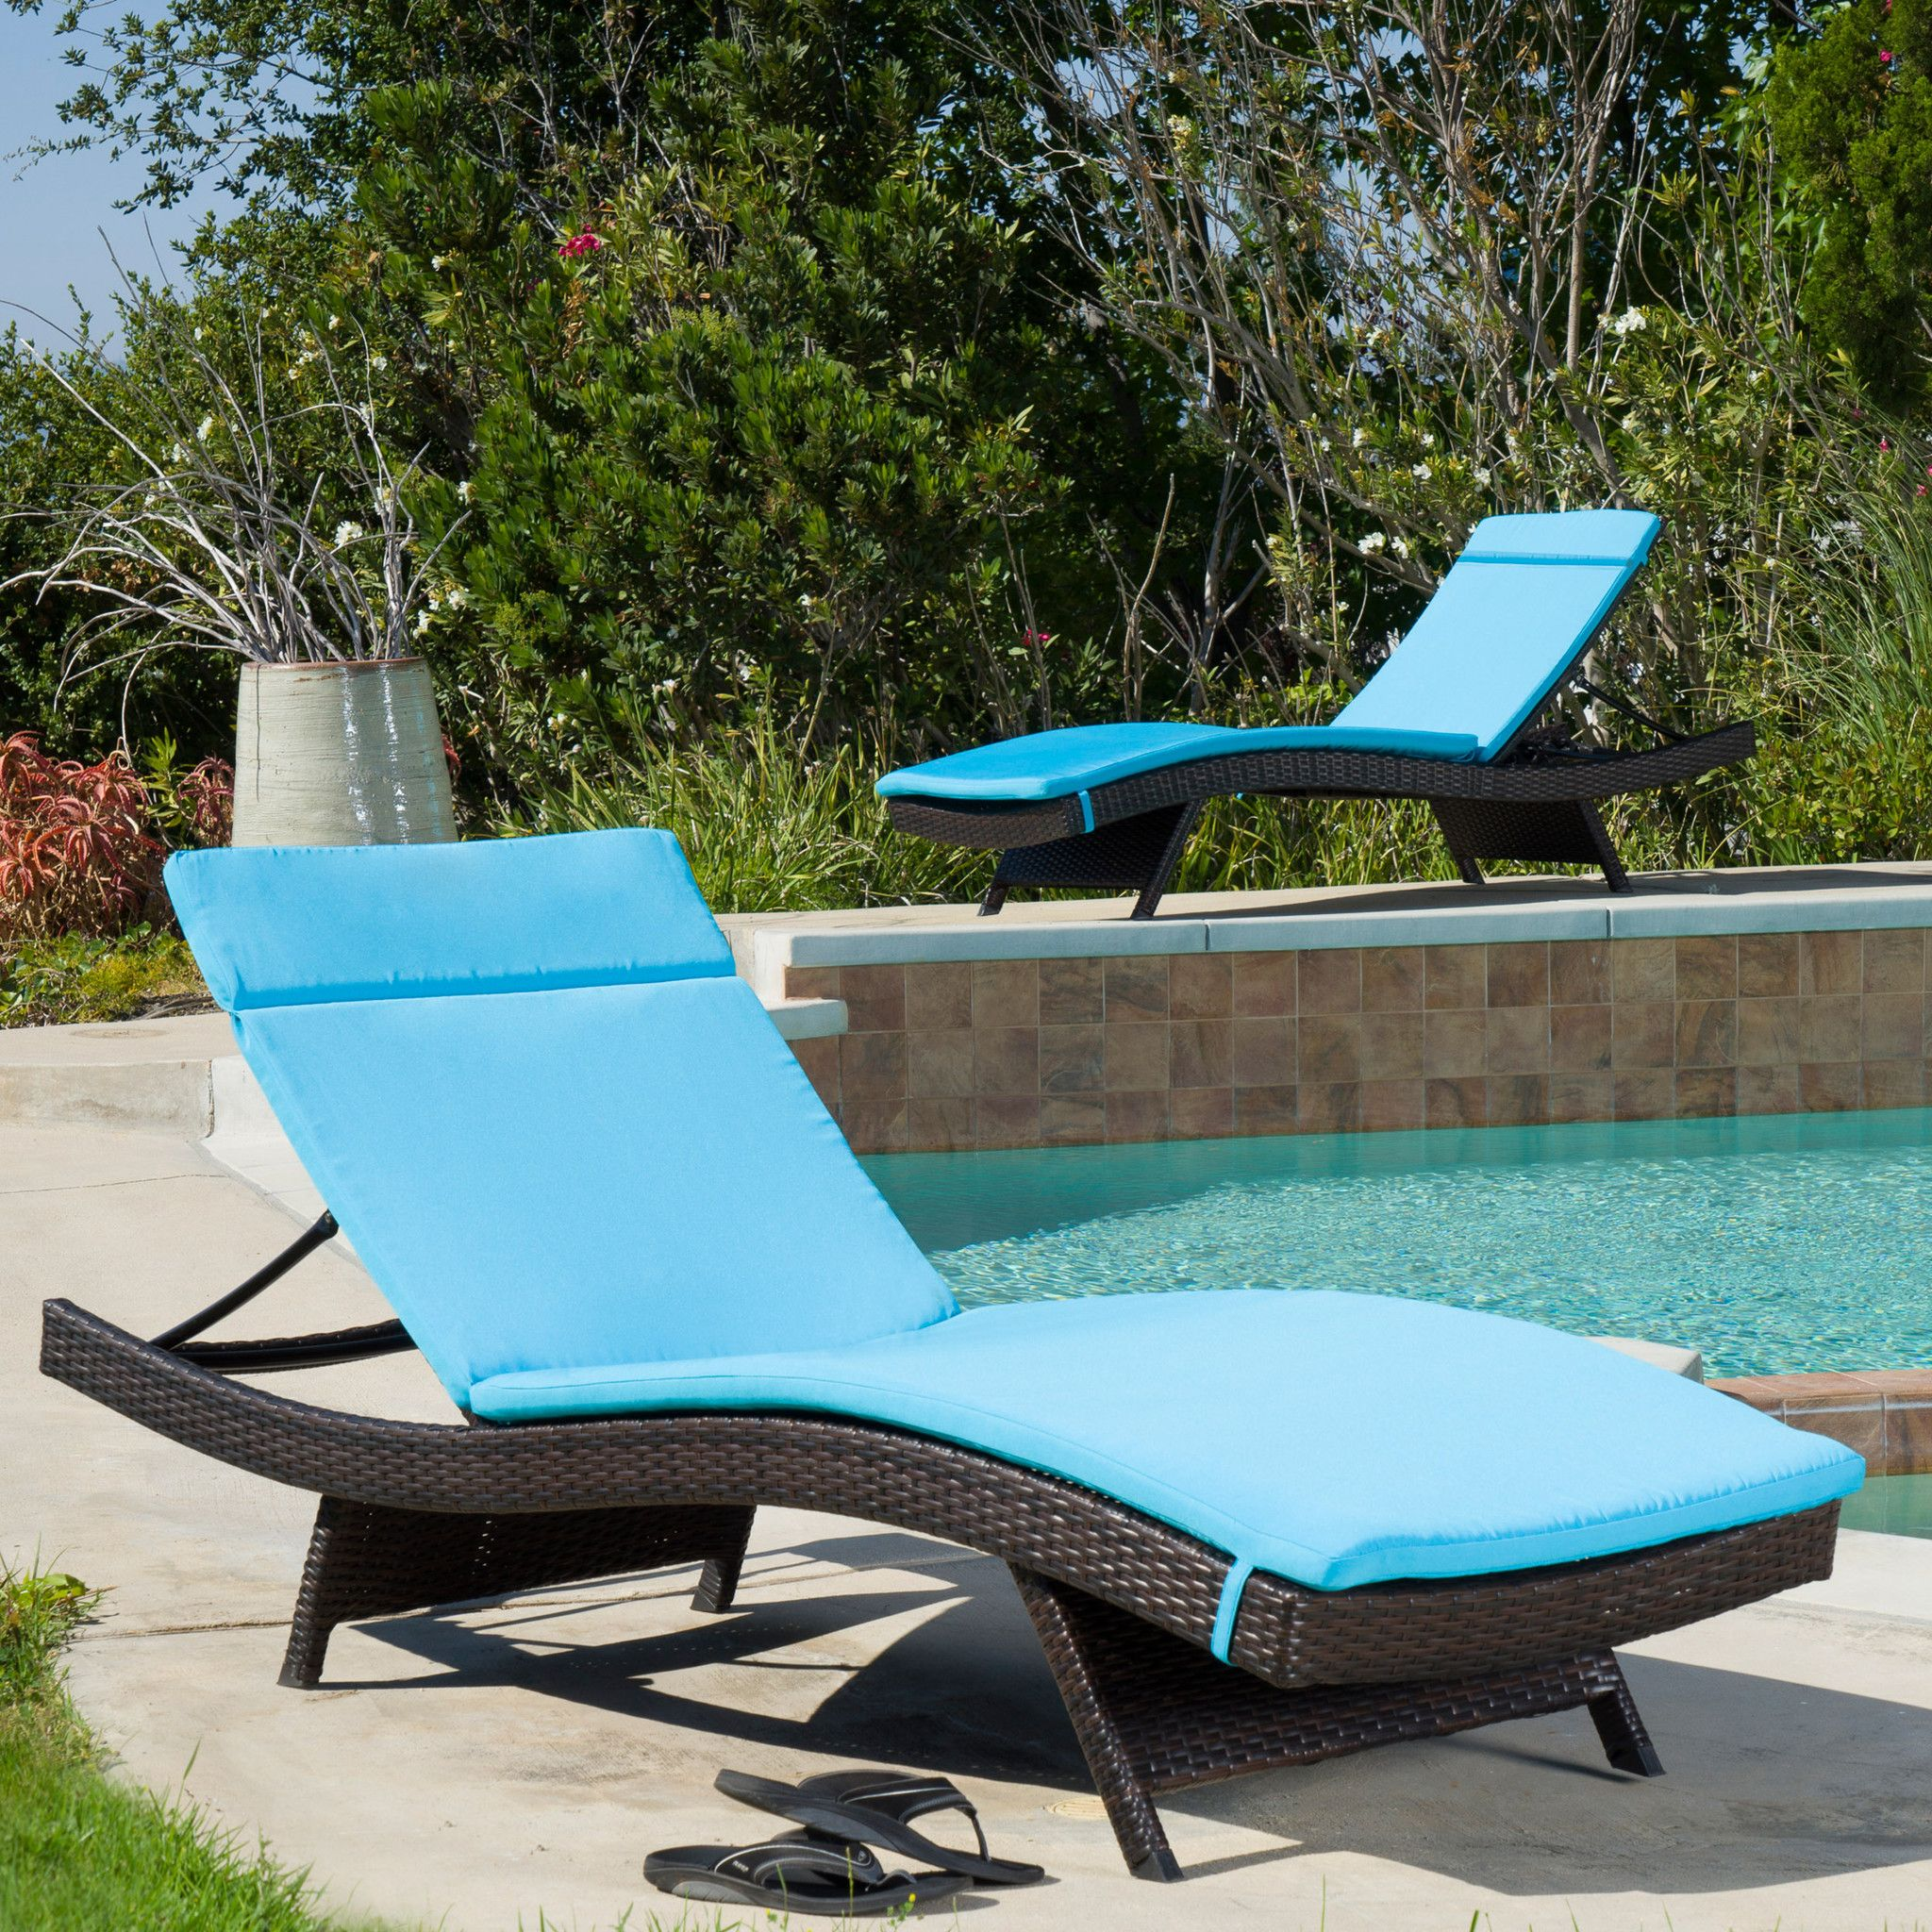 - Single Blue Cushion Pad For Outdoor Chaise Lounge Chair Lounge